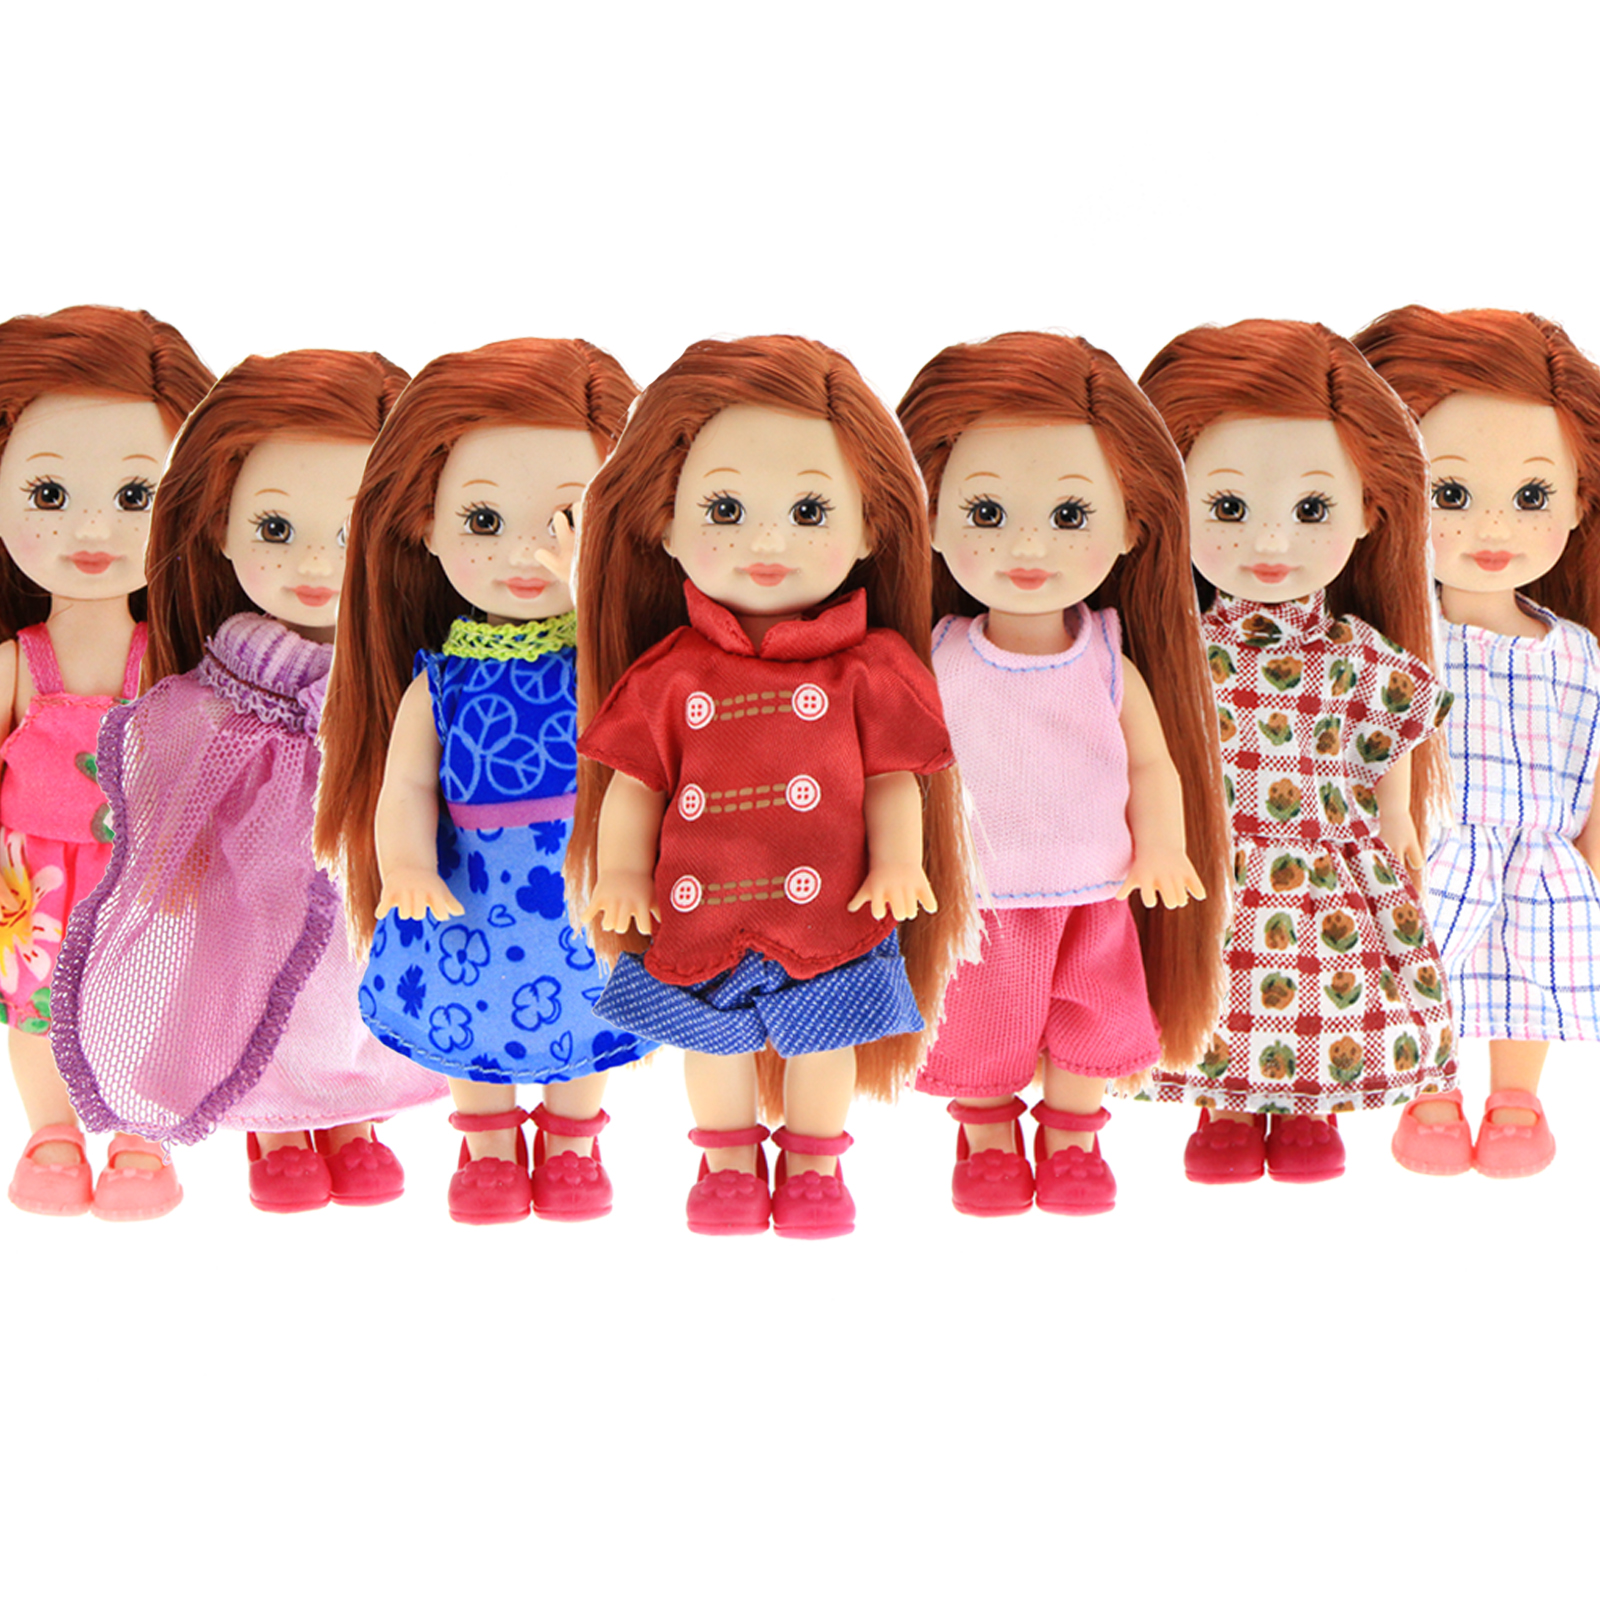 Random Pick 5 Set Daily Mini Doll Dress Cute Outfits Gown Clothes For Barbie Sister Kelly Doll House Girl Baby Accessories Toy